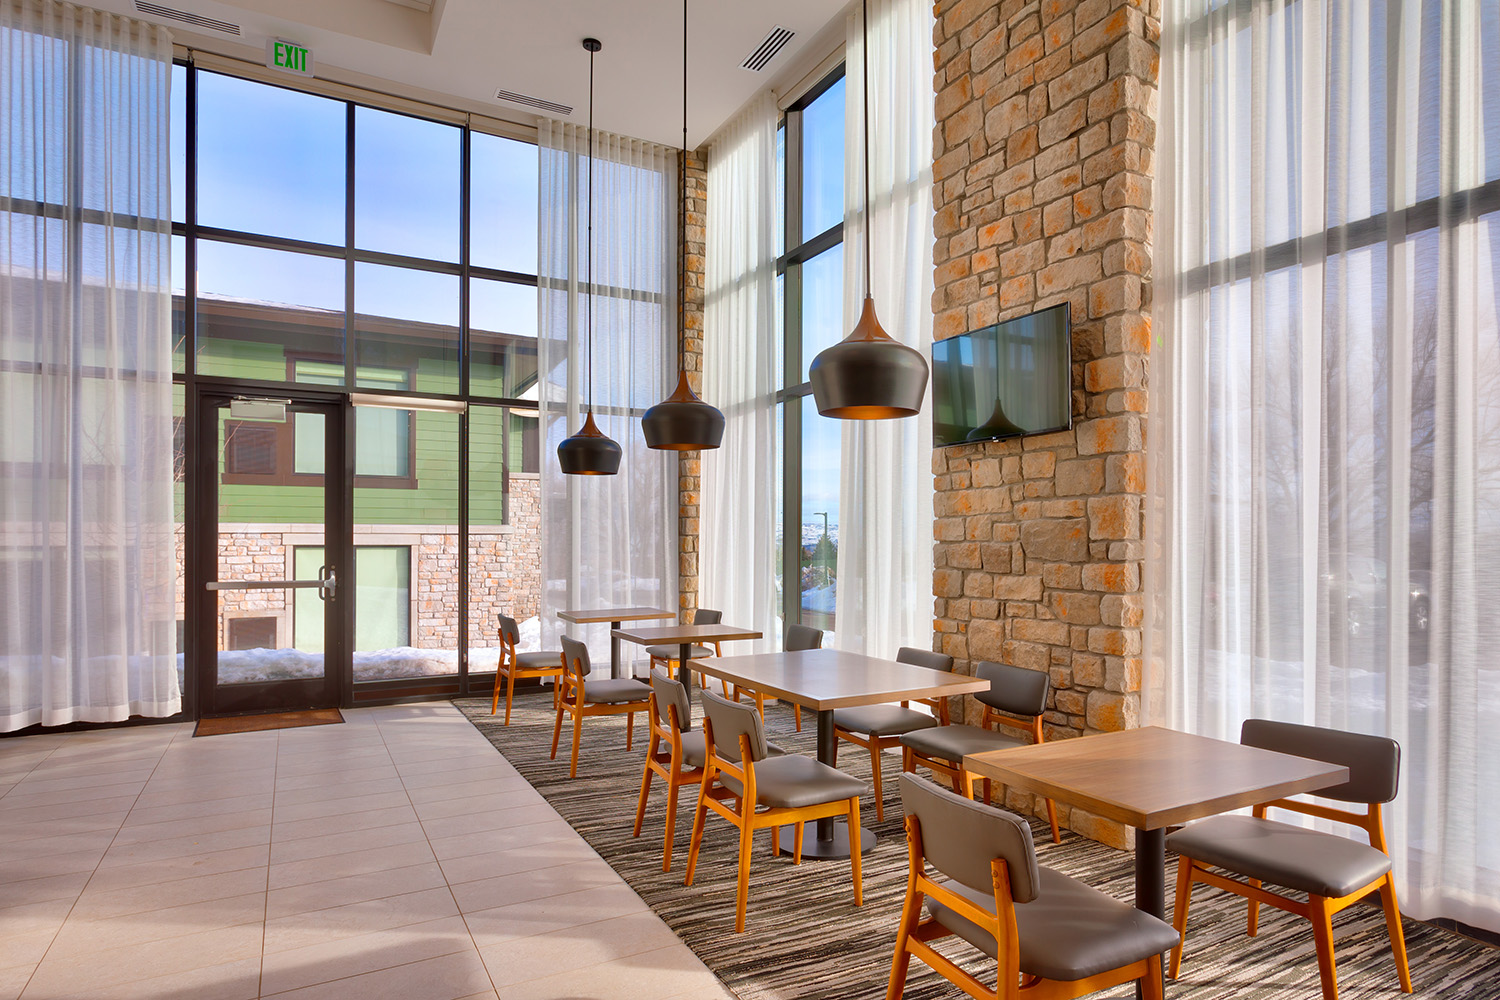 Challenger Lighting_Hyatt Place_Park City UT_hyatt_hyattdam_images_2016_03_17_1518_Hyatt-Place-Park-City-P013-Dining-Area_2.jpg